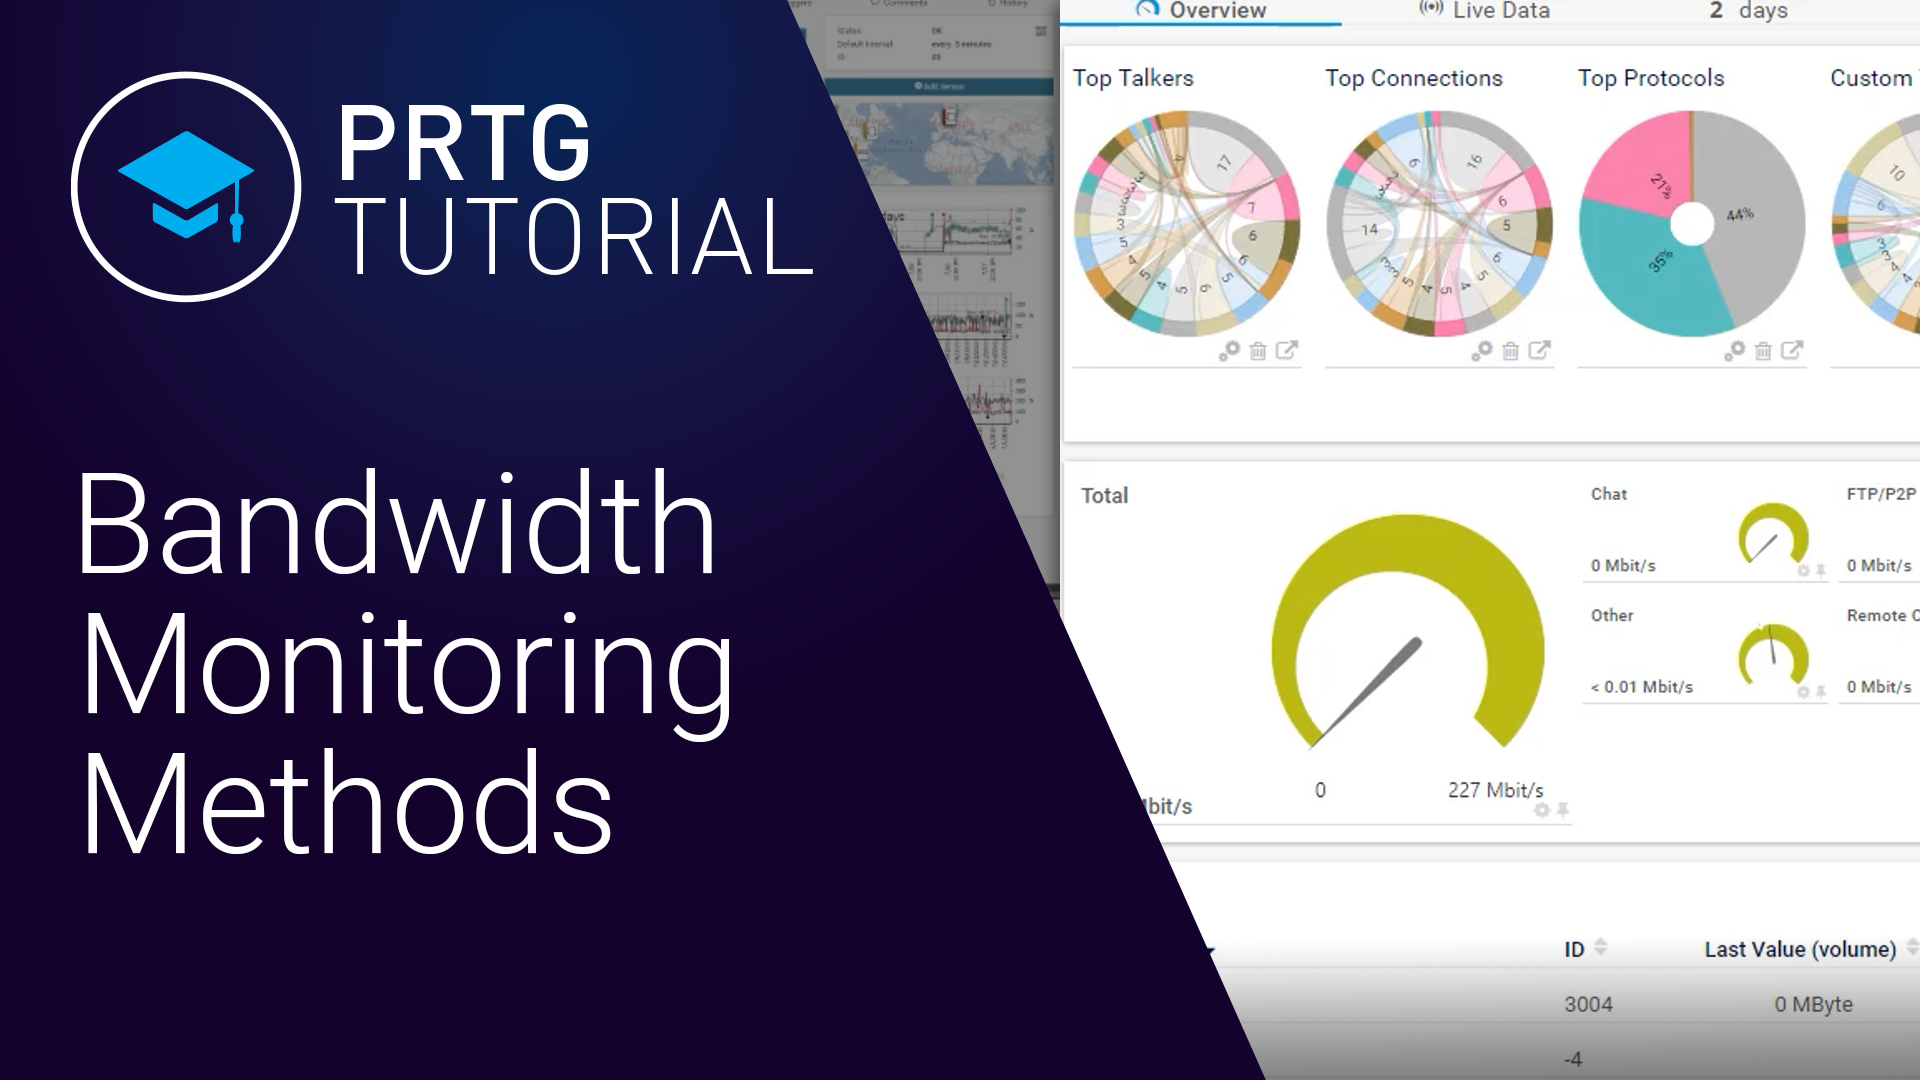 Video: PRTG Network Monitor - Bandwidth Monitoring Methods (Videos, Bandwidth)